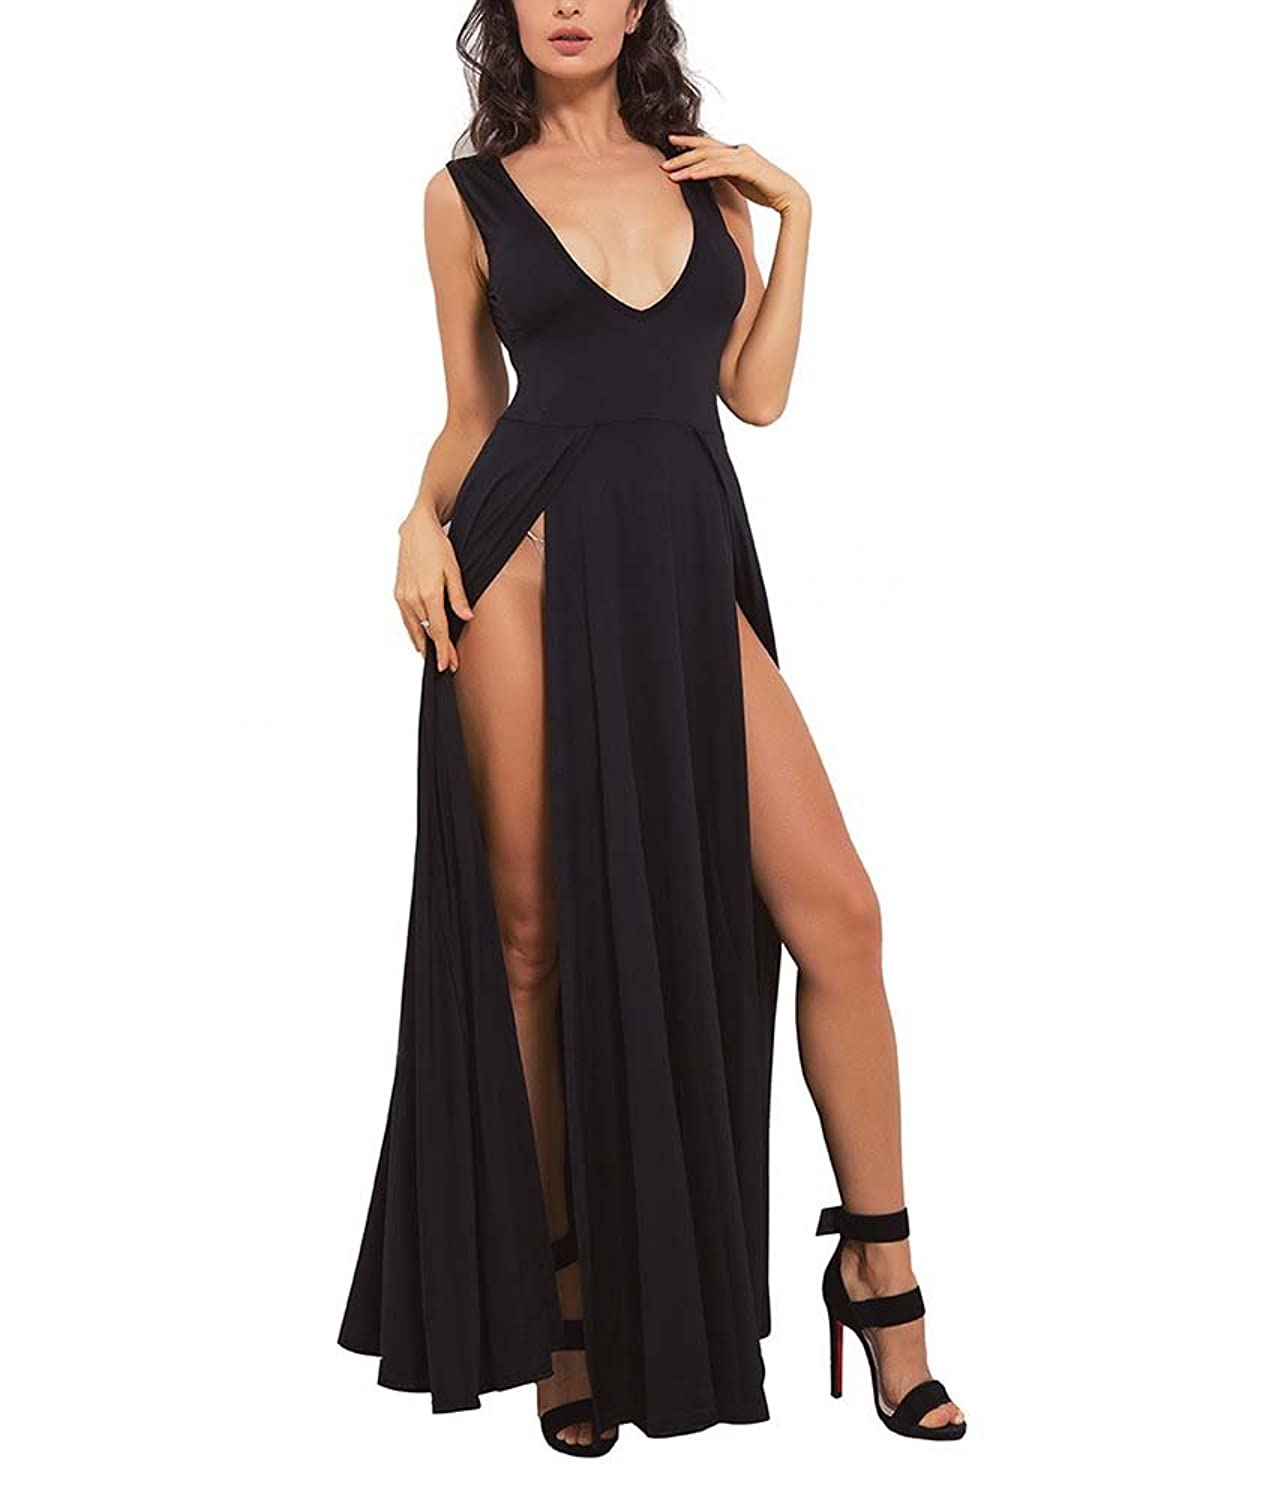 Sexy Dress Nightclub Kleid V-Ausschnitt Low-Cut-Kleid Enge Kleid ...